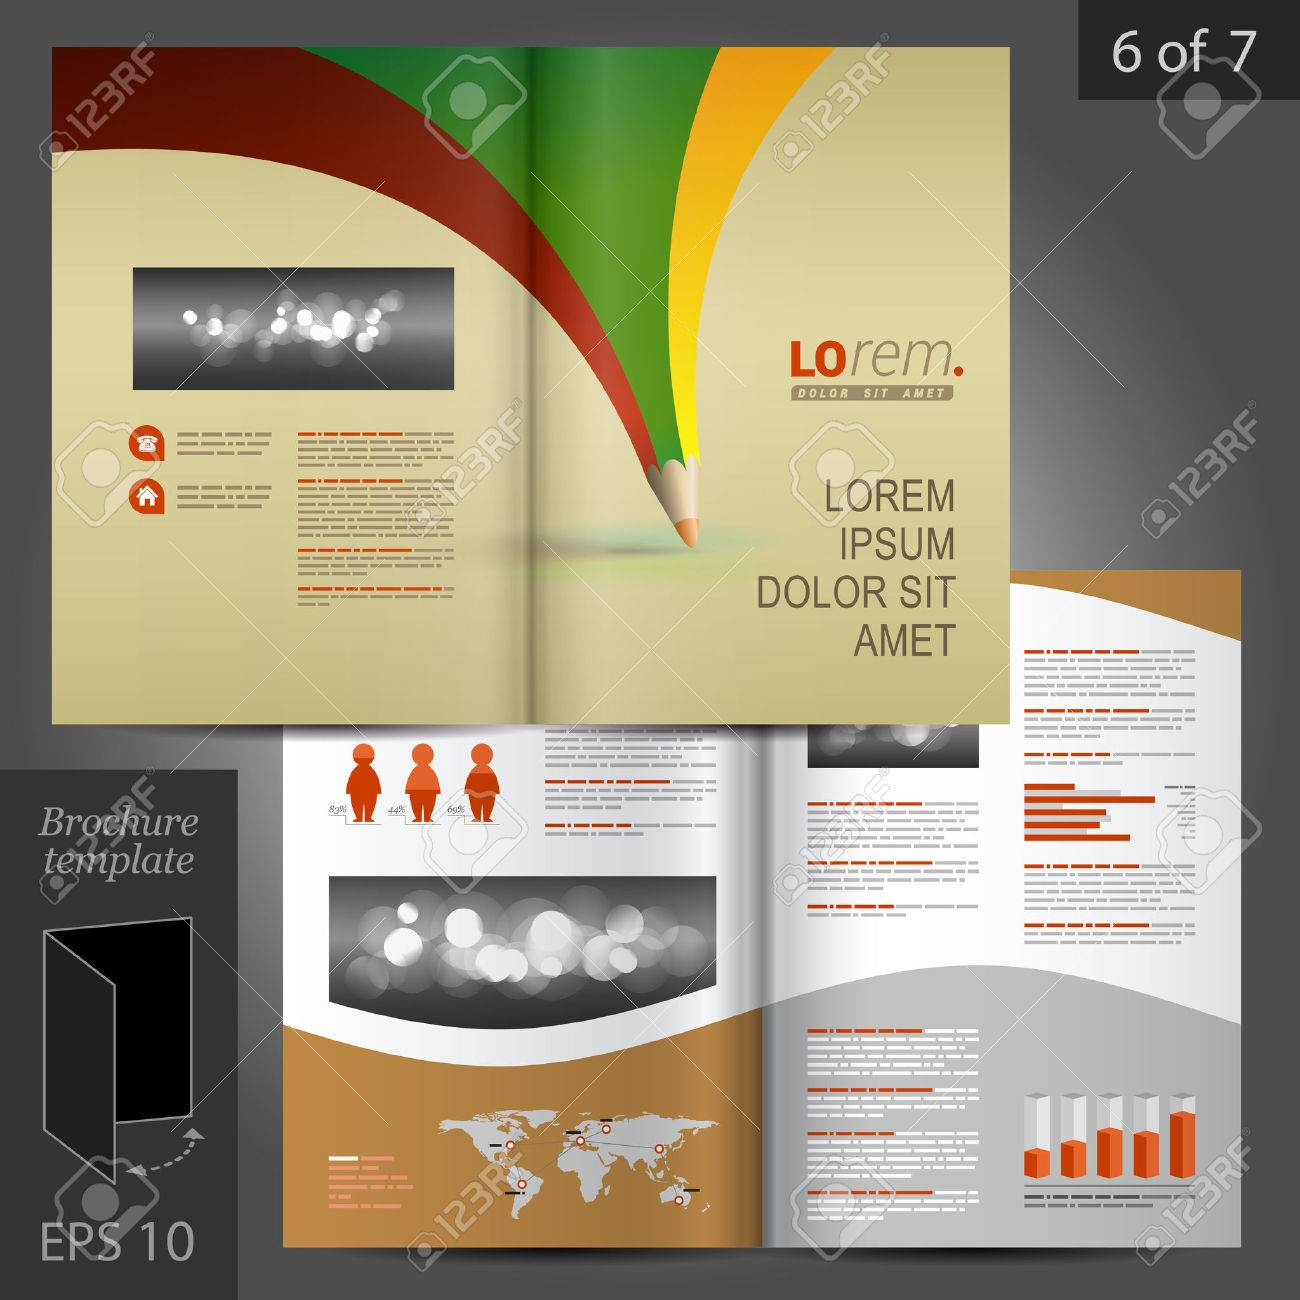 Creative Vector Brochure Template Design With Color Pencil Royalty